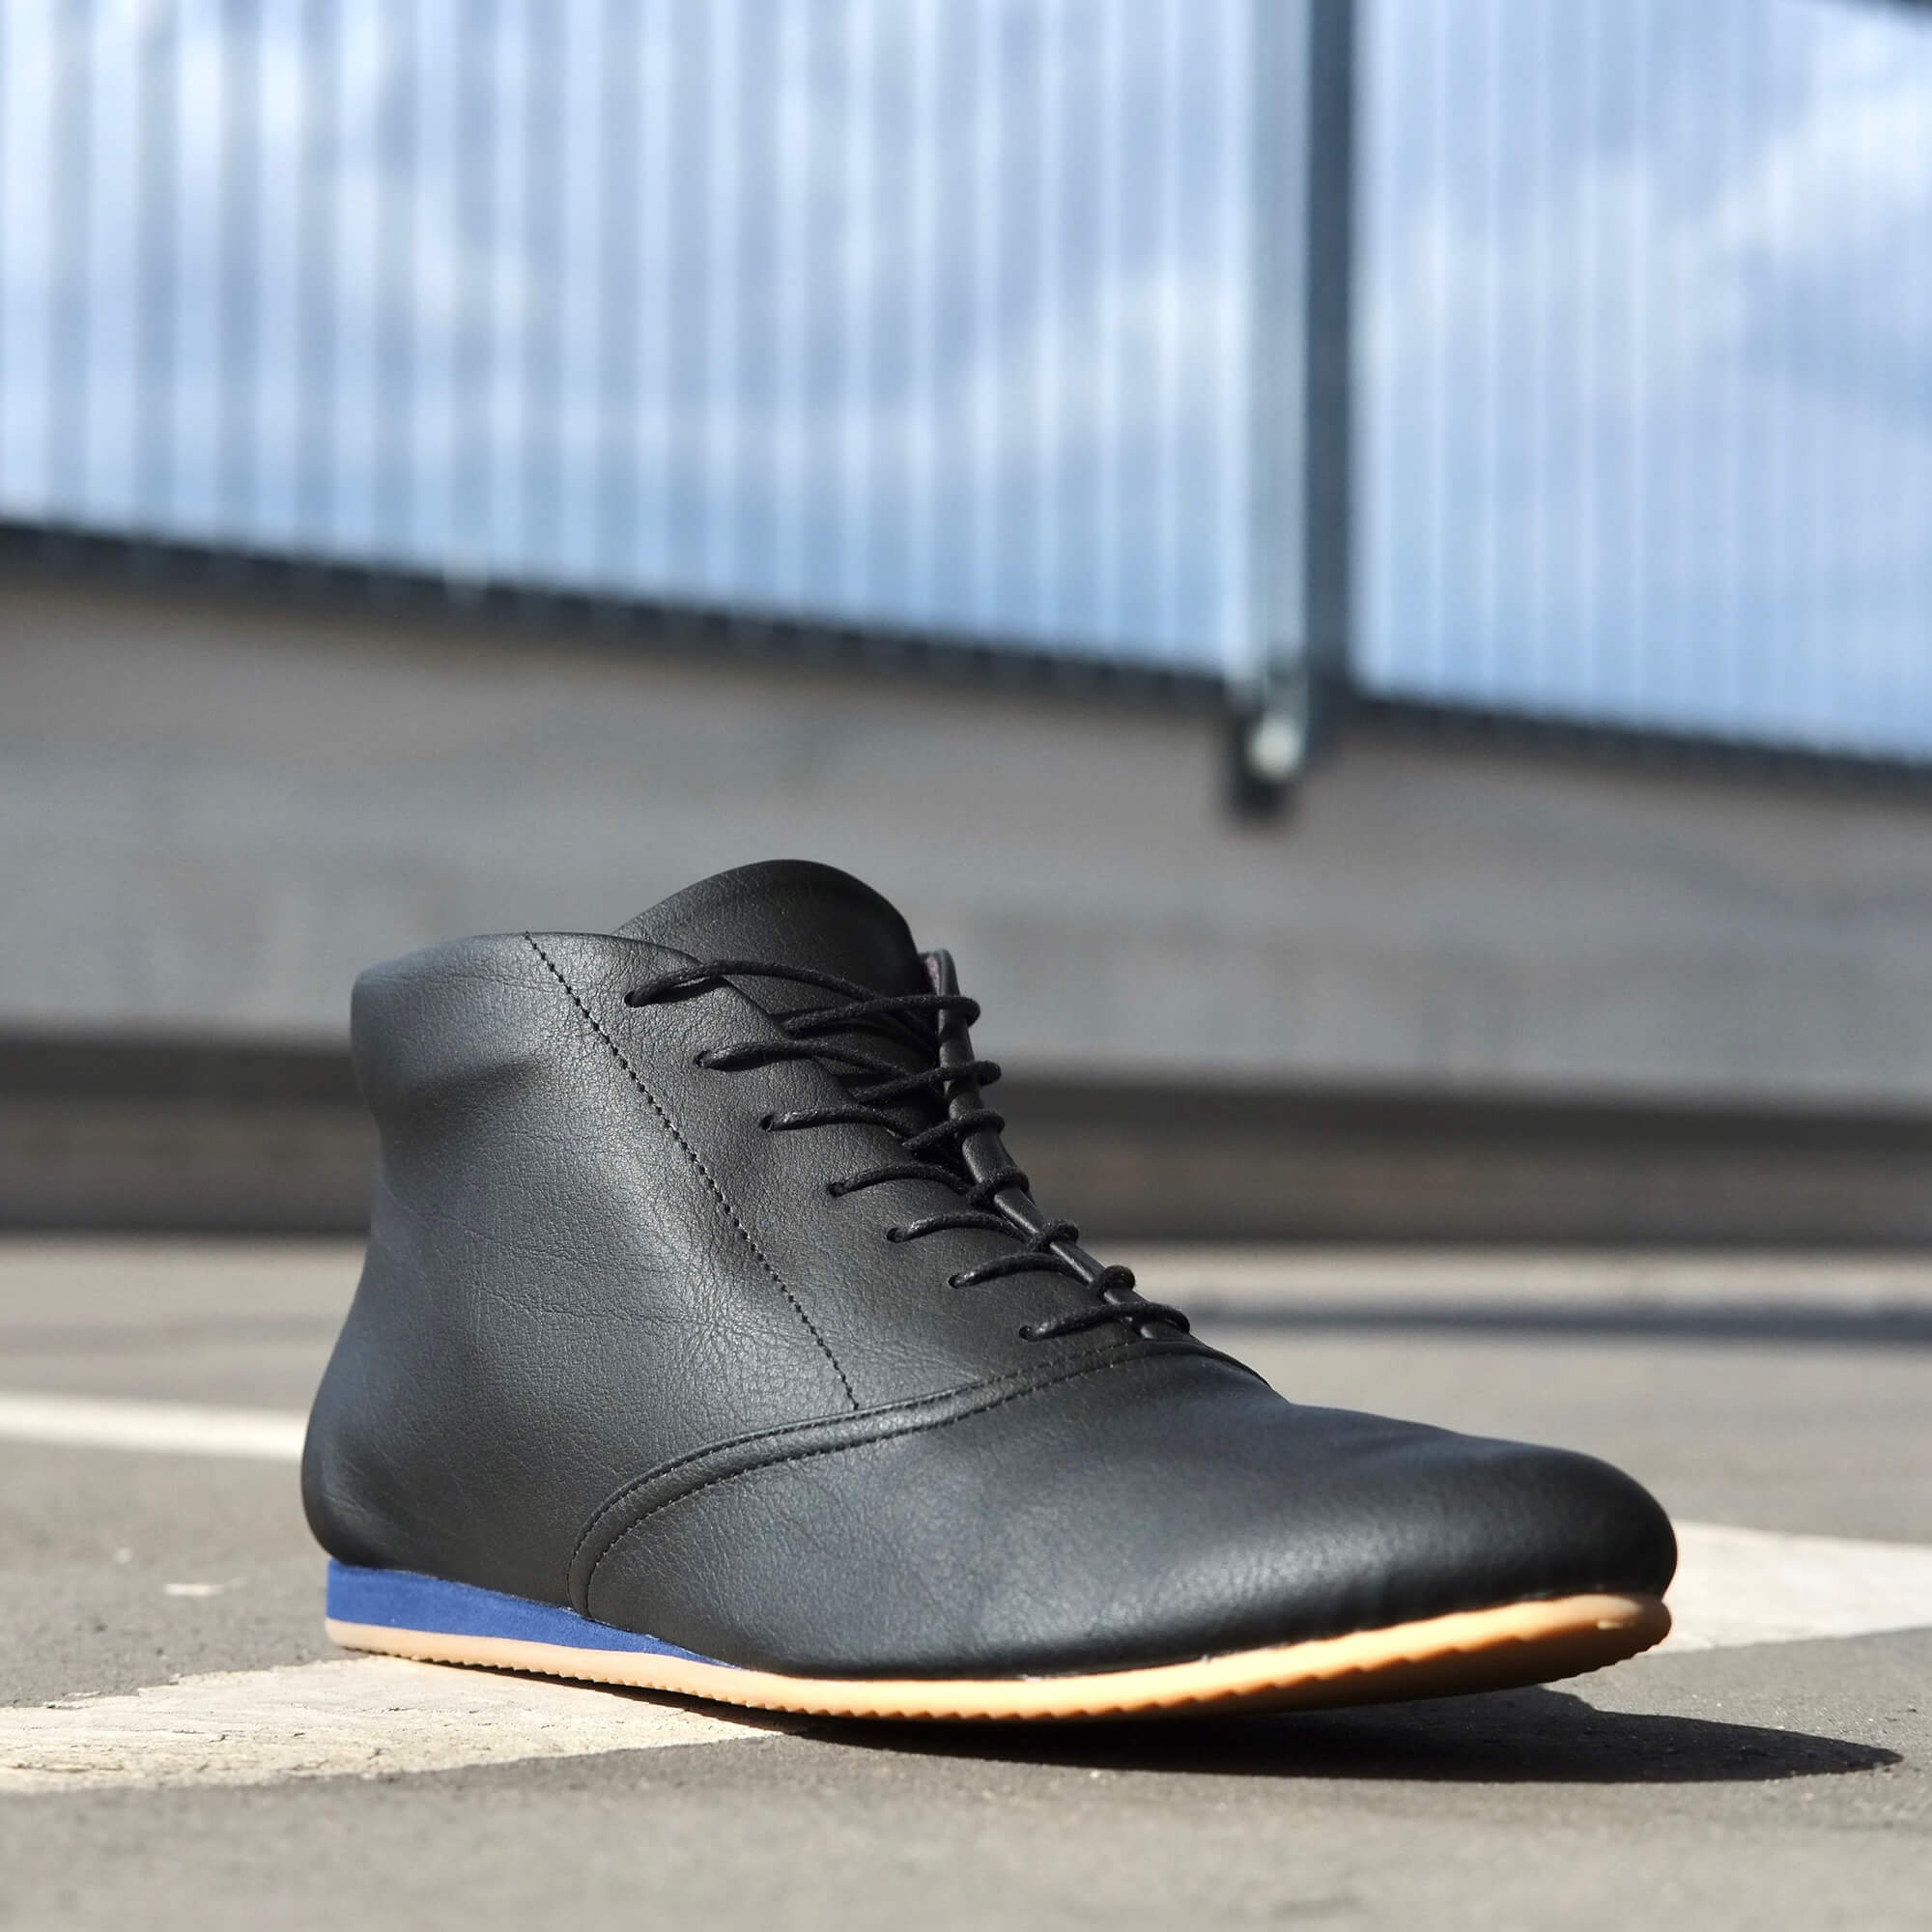 '85V Black / Blue Sneaker Stiefelette von SORBAS Shoes